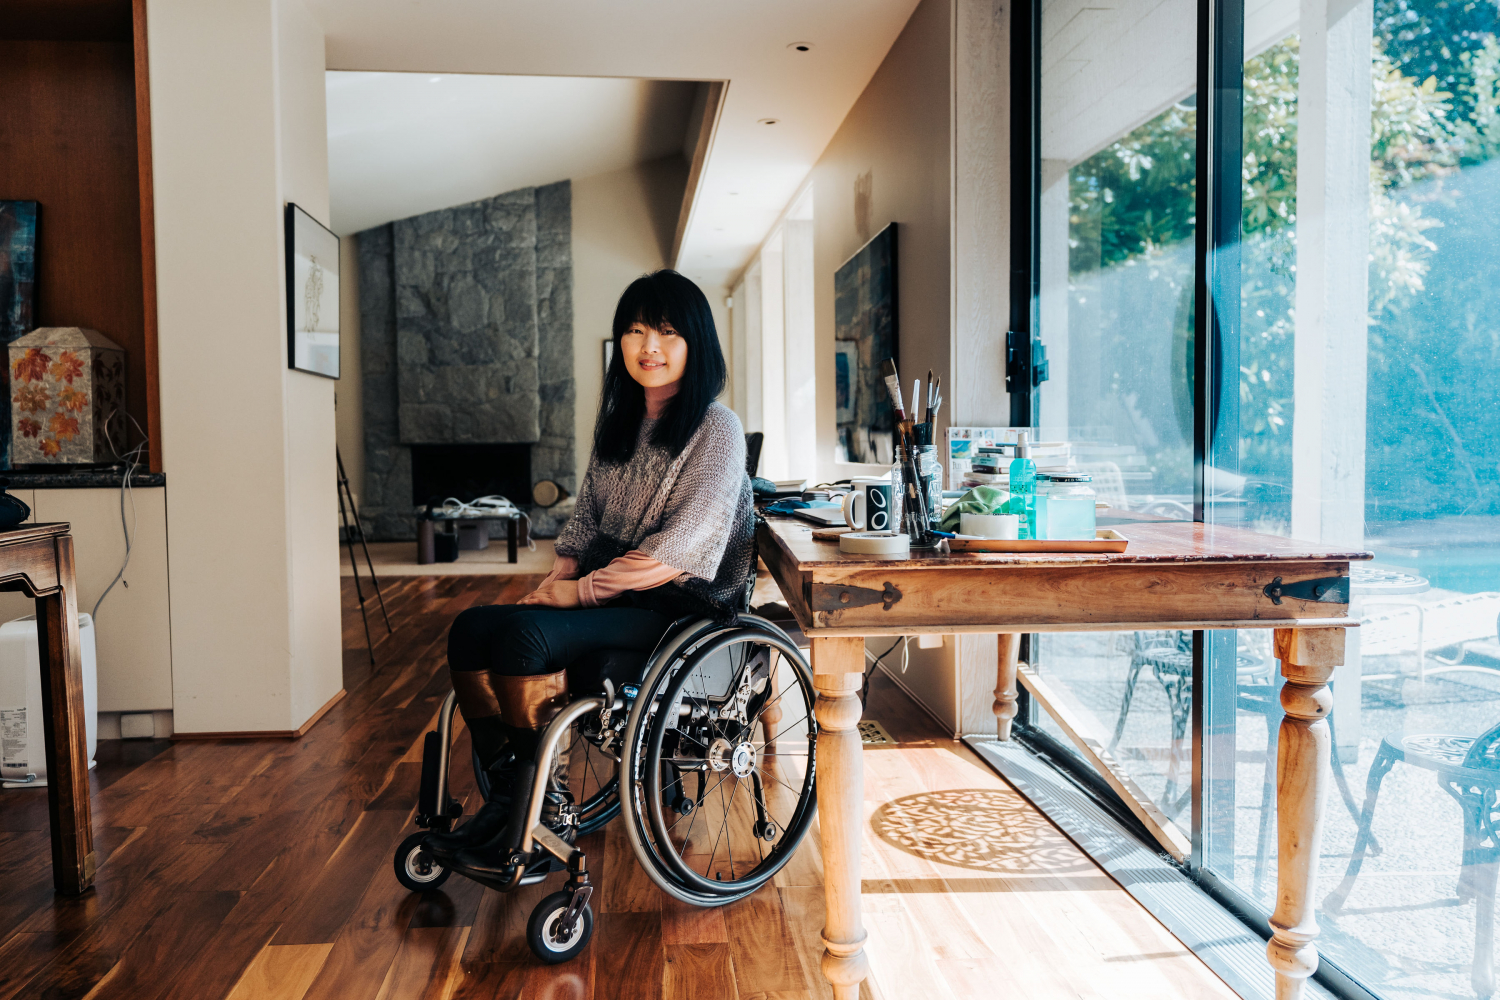 Keiko Honda started the Neighbourhood Small Grants project called Personal Narratives for Future Generations.